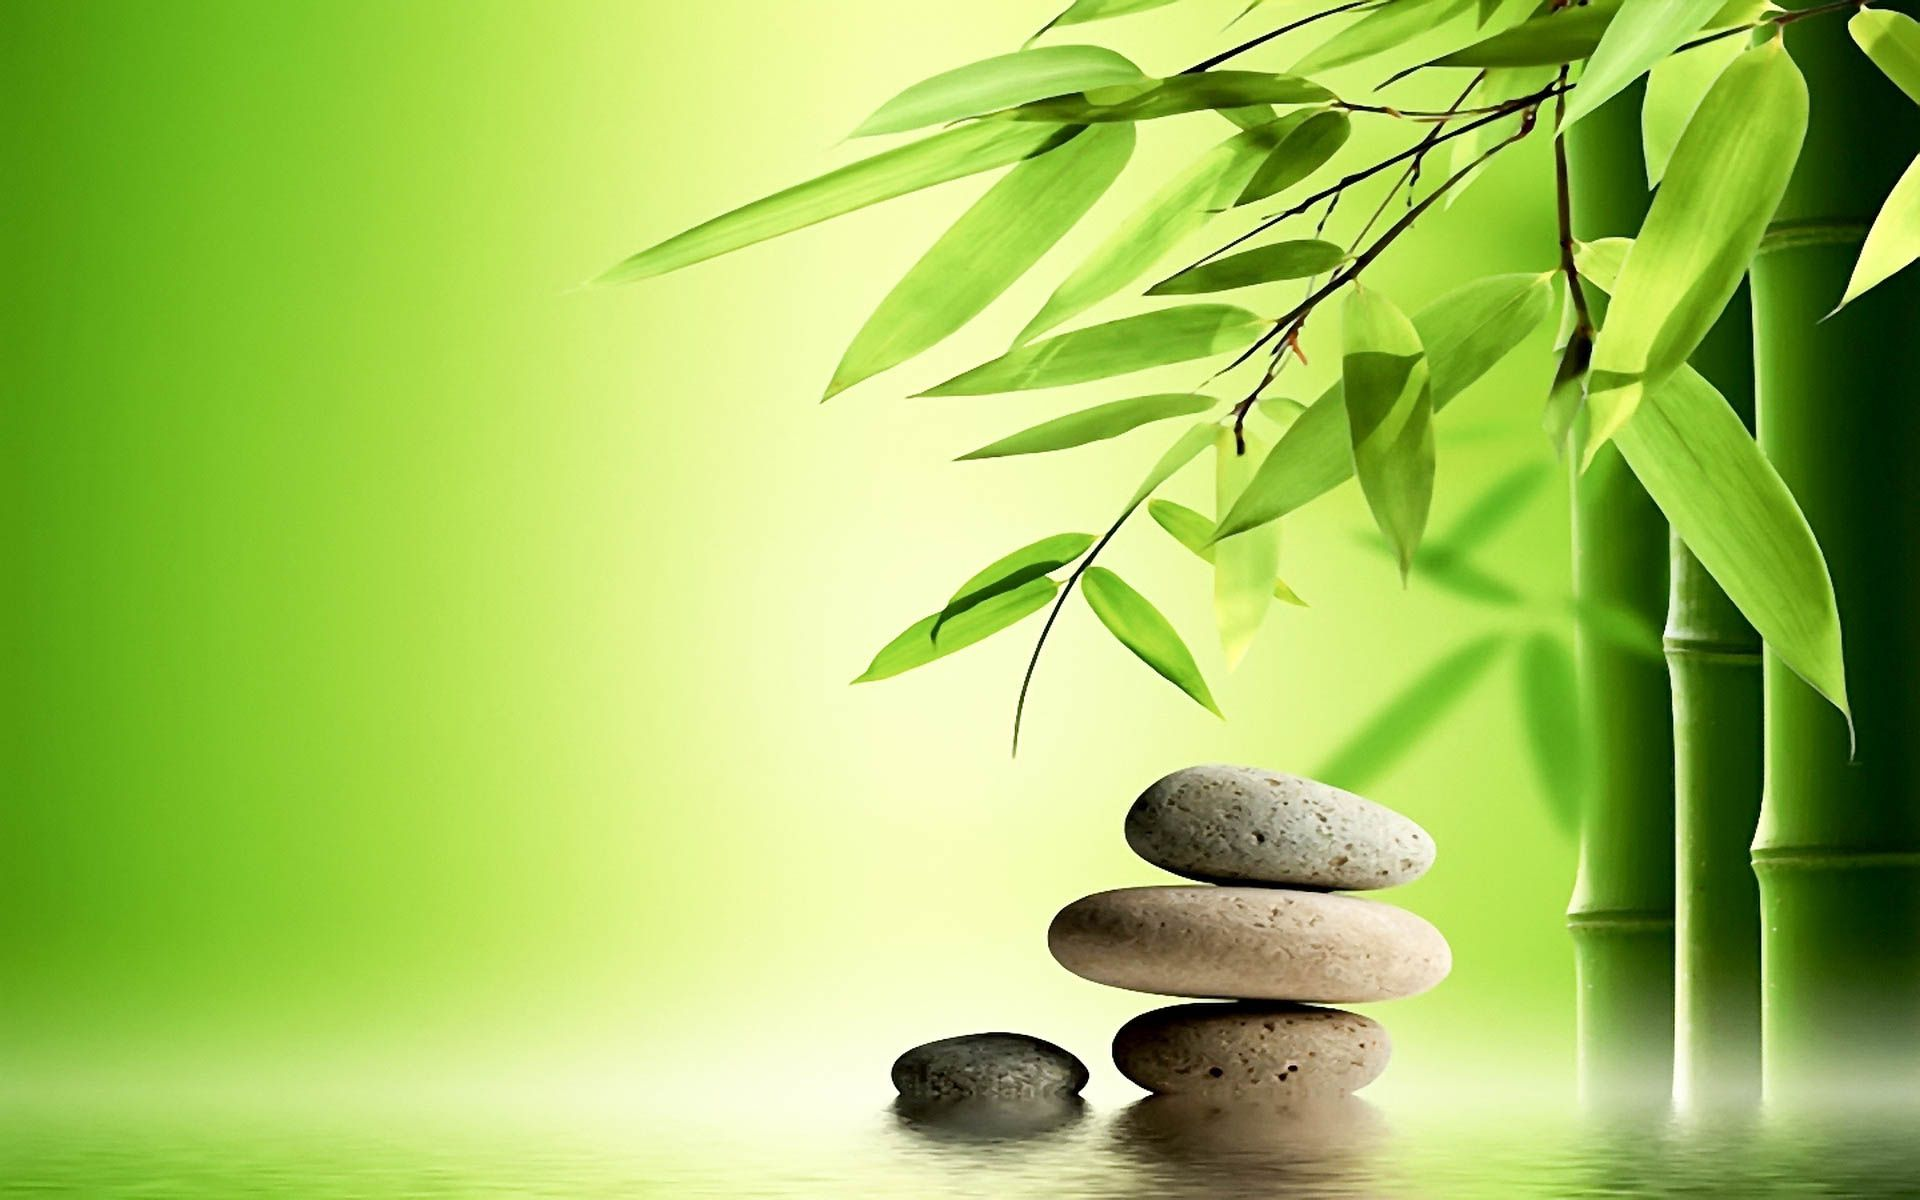 Zen Hd Wallpapers Backgrounds Wallpaper 1366 768 Zen Hd Wallpapers